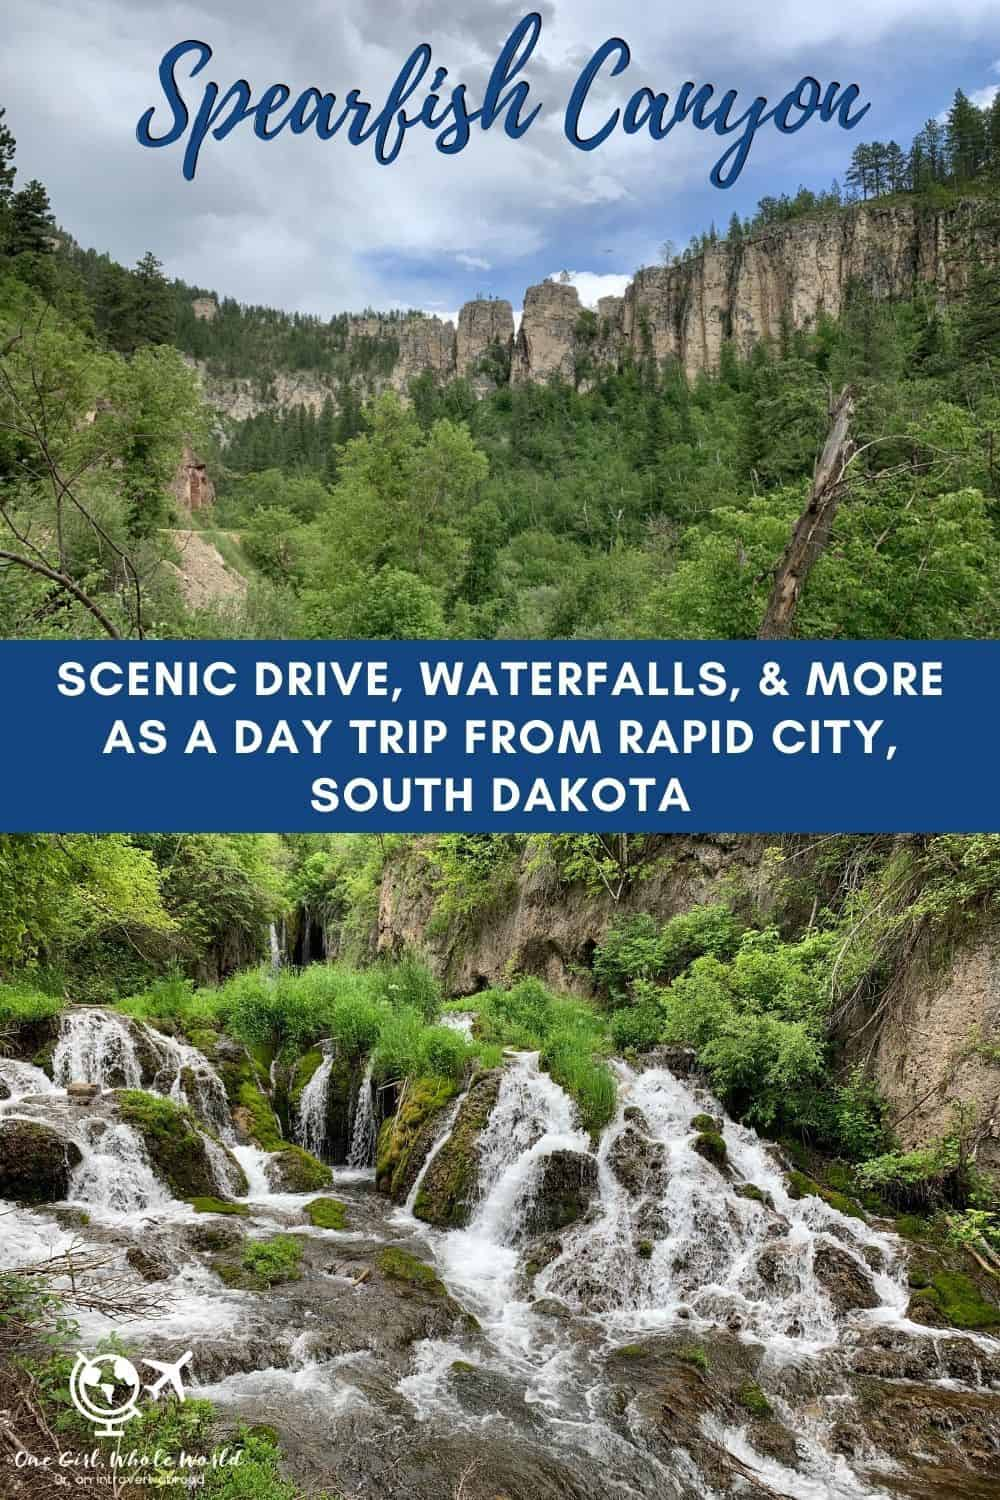 A Day Trip Along Spearfish Canyon Scenic Byway, South Dakota | If you're planning a South Dakota road trip or spending time in the Rapid City area, Spearfish Canyon is a great under-the-radar option for exploring. Easily accessible waterfalls, towering limestone canyon walls, and much more. #southdakota #rapidcity #spearfishcanyon #roadtrip #blackhills